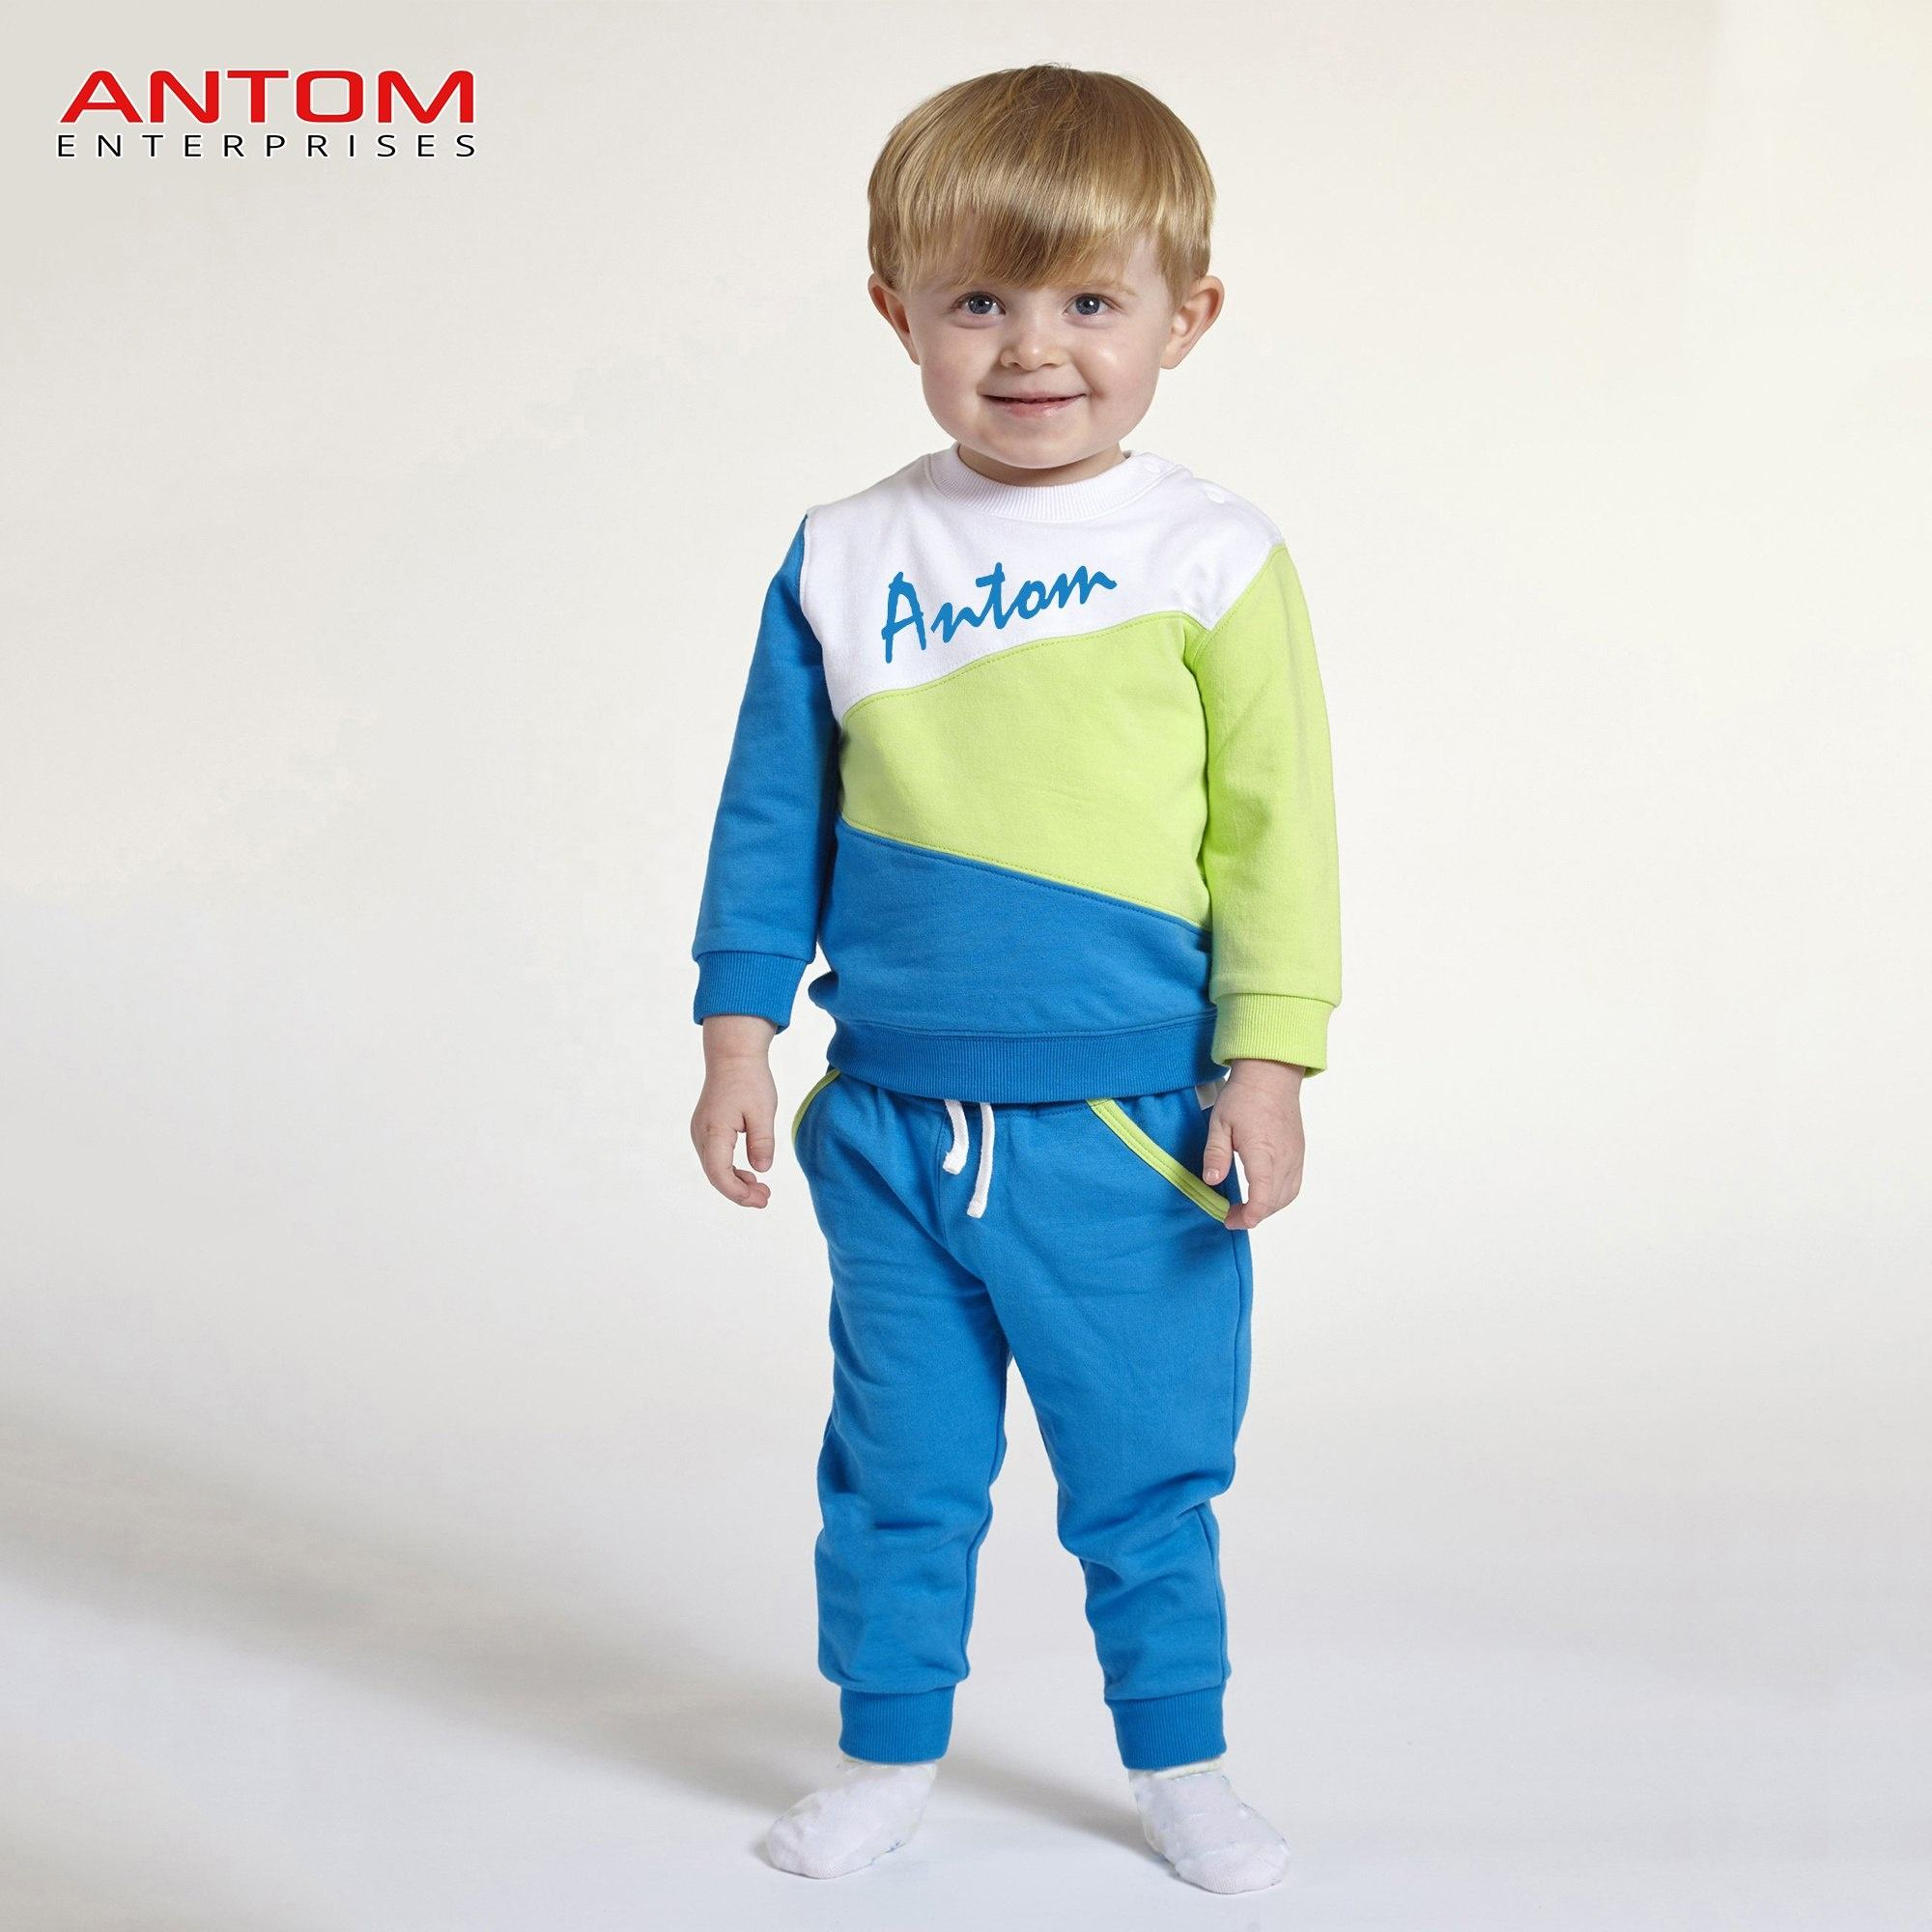 Normal Fit skinny boys 패션 fitted Distressed 운동복 Made by Antom Enterprises